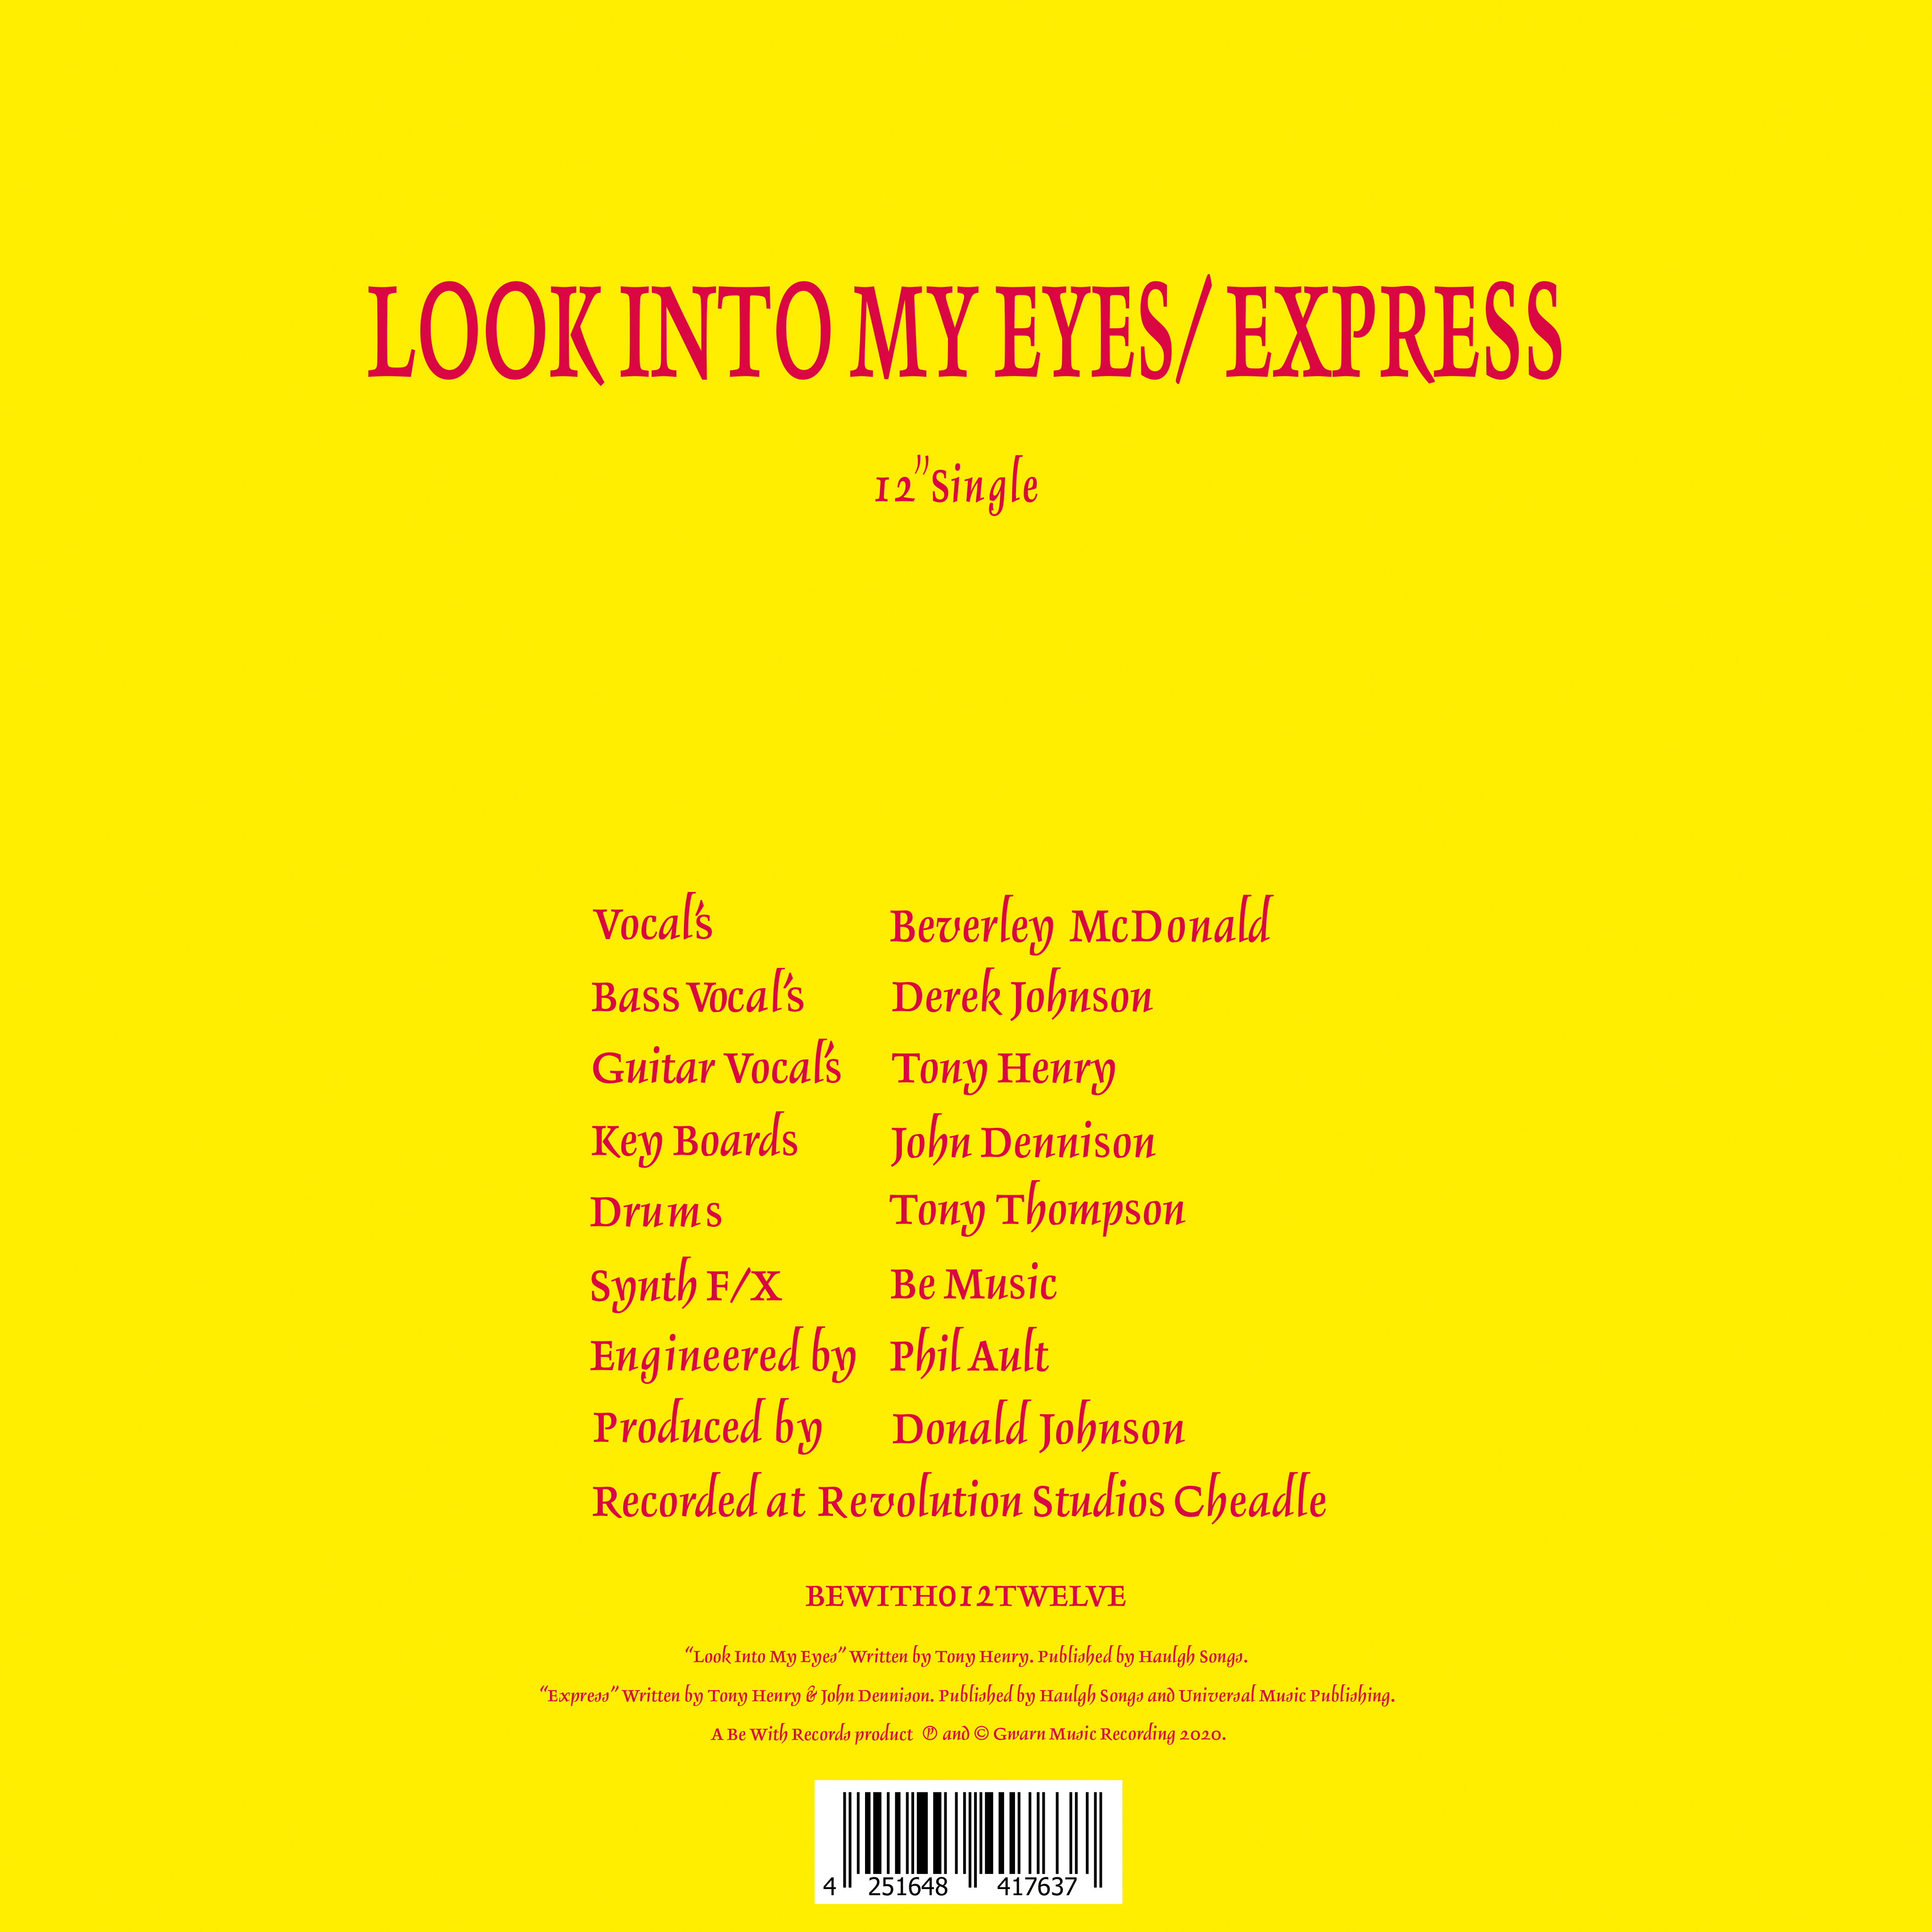 Look Into My Eyes / Express